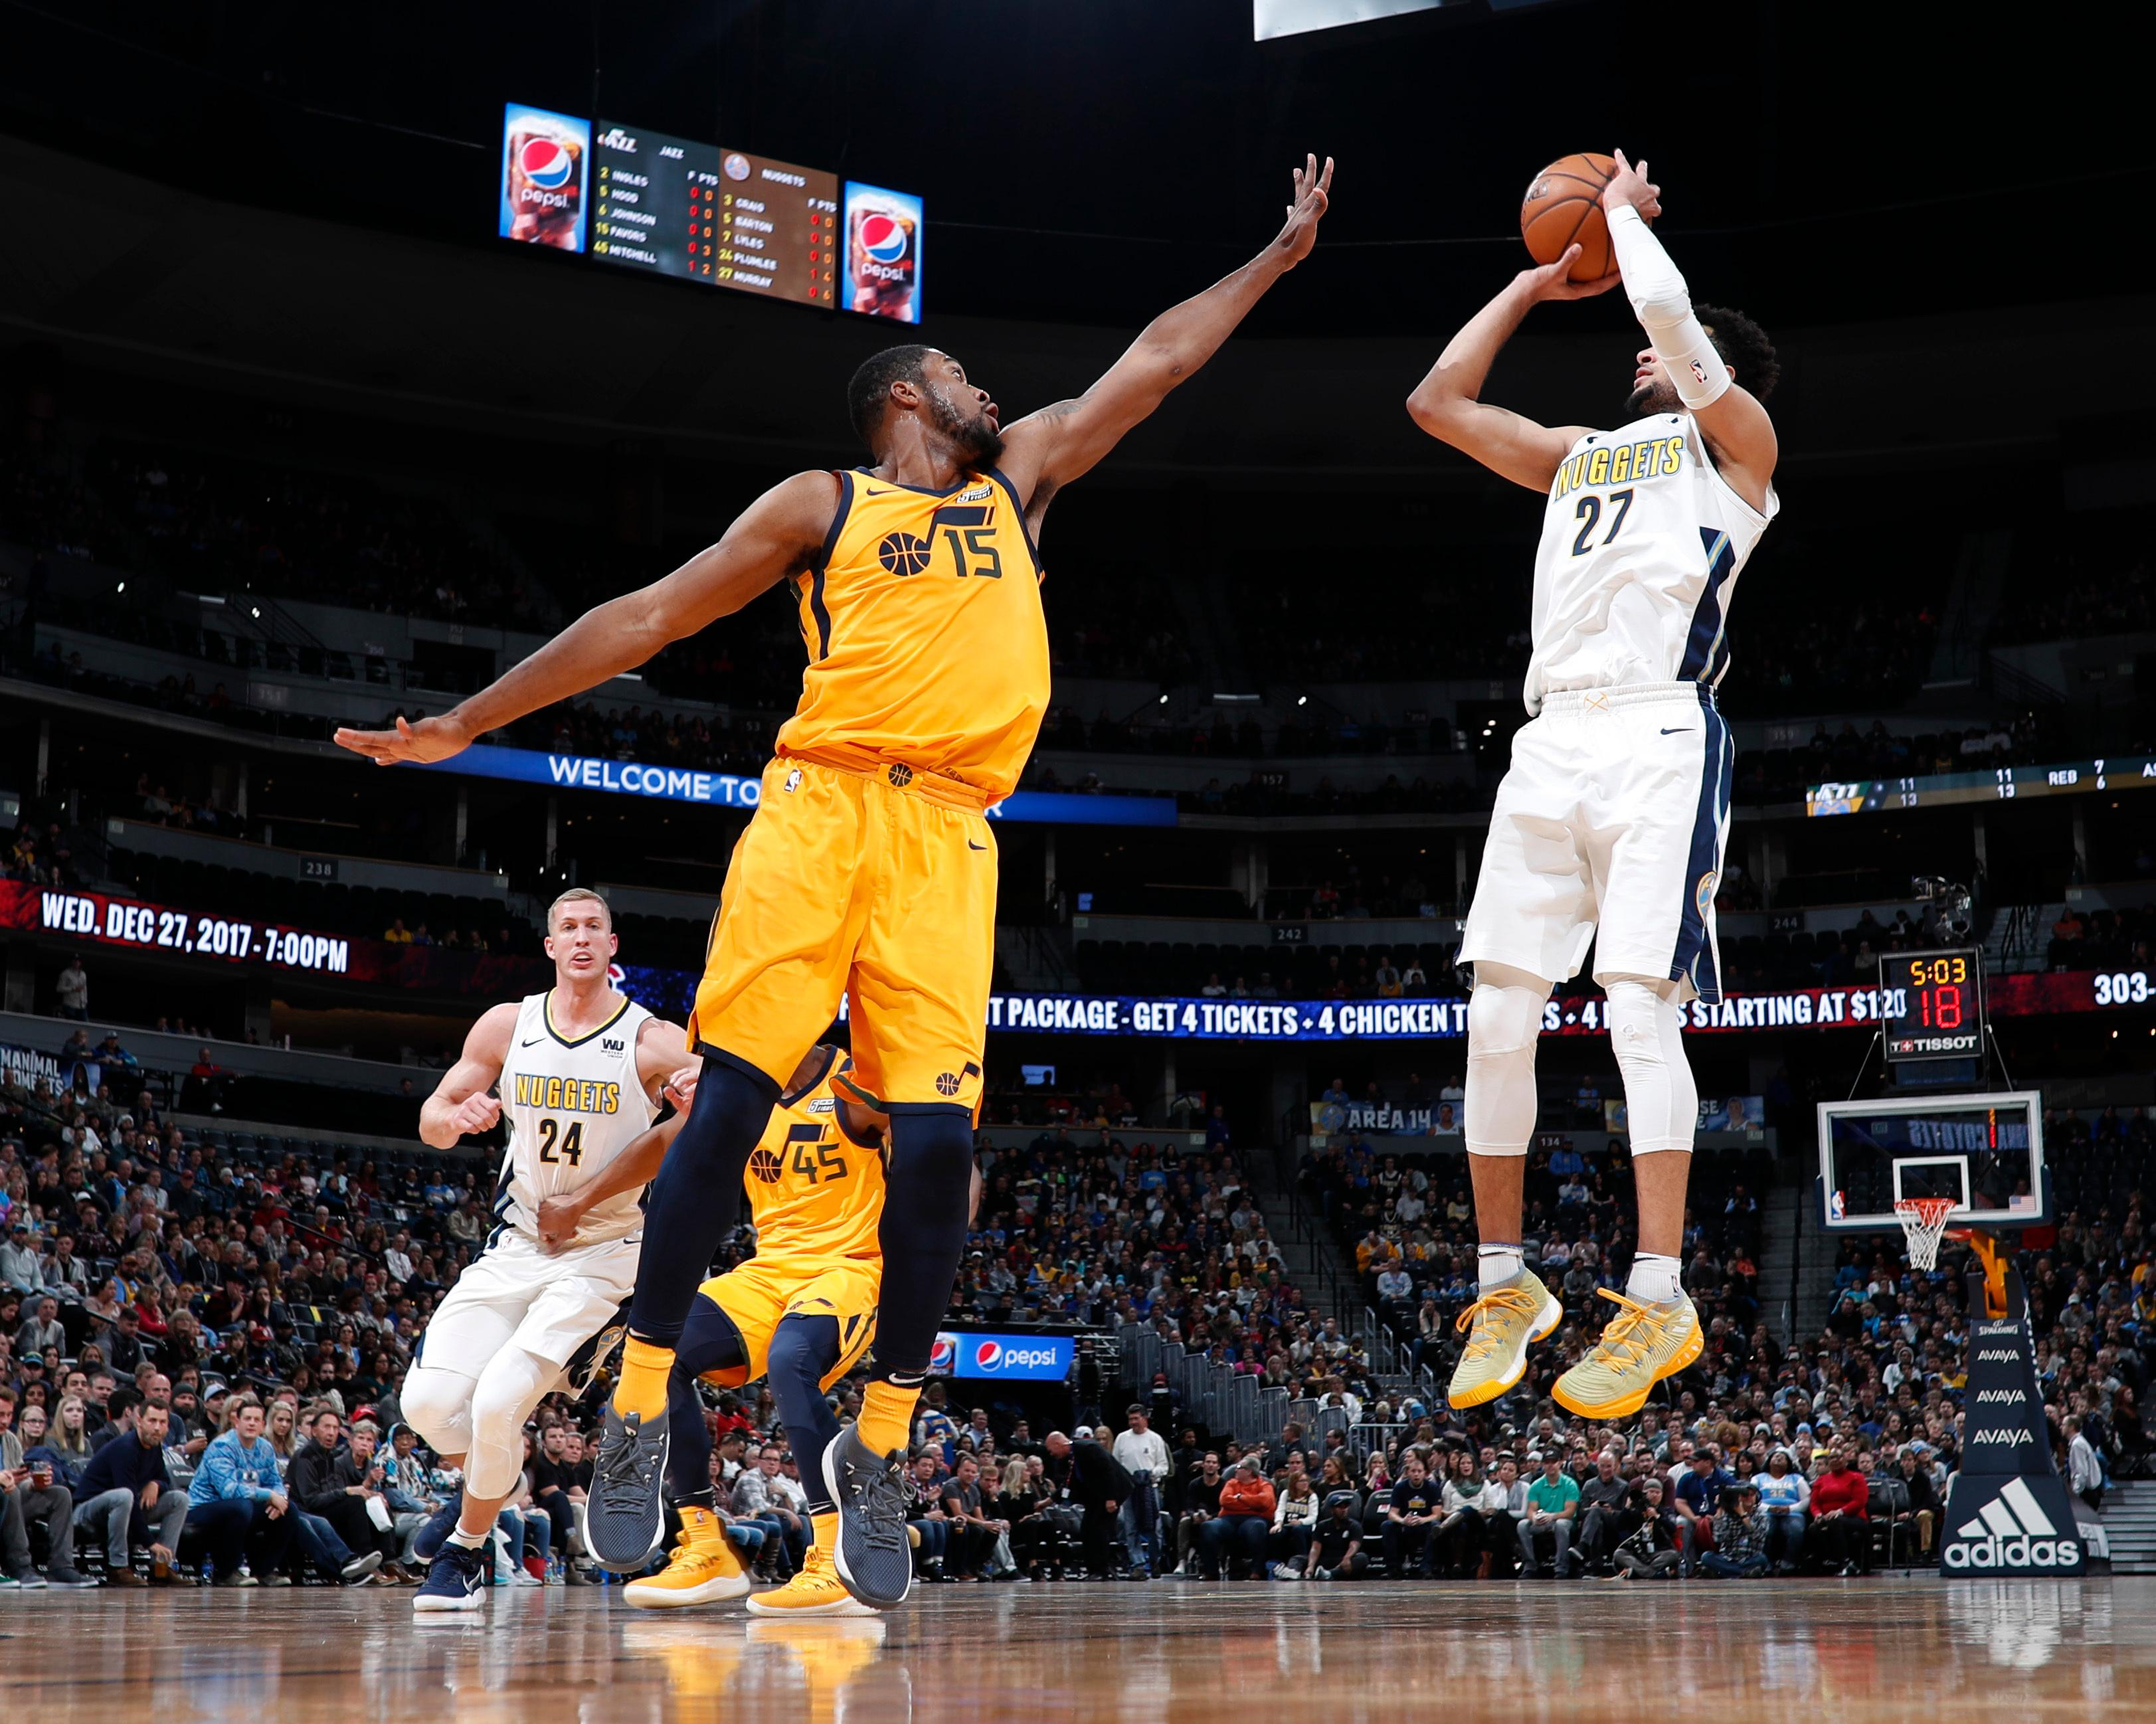 Utah Jazz forward Derrick Favors, left, reaches up to block a shot by Denver Nuggets guard Jamal Murray in the first half of an NBA basketball game, Tuesday, Dec. 26, 2017, in Denver. (AP Photo/David Zalubowski)